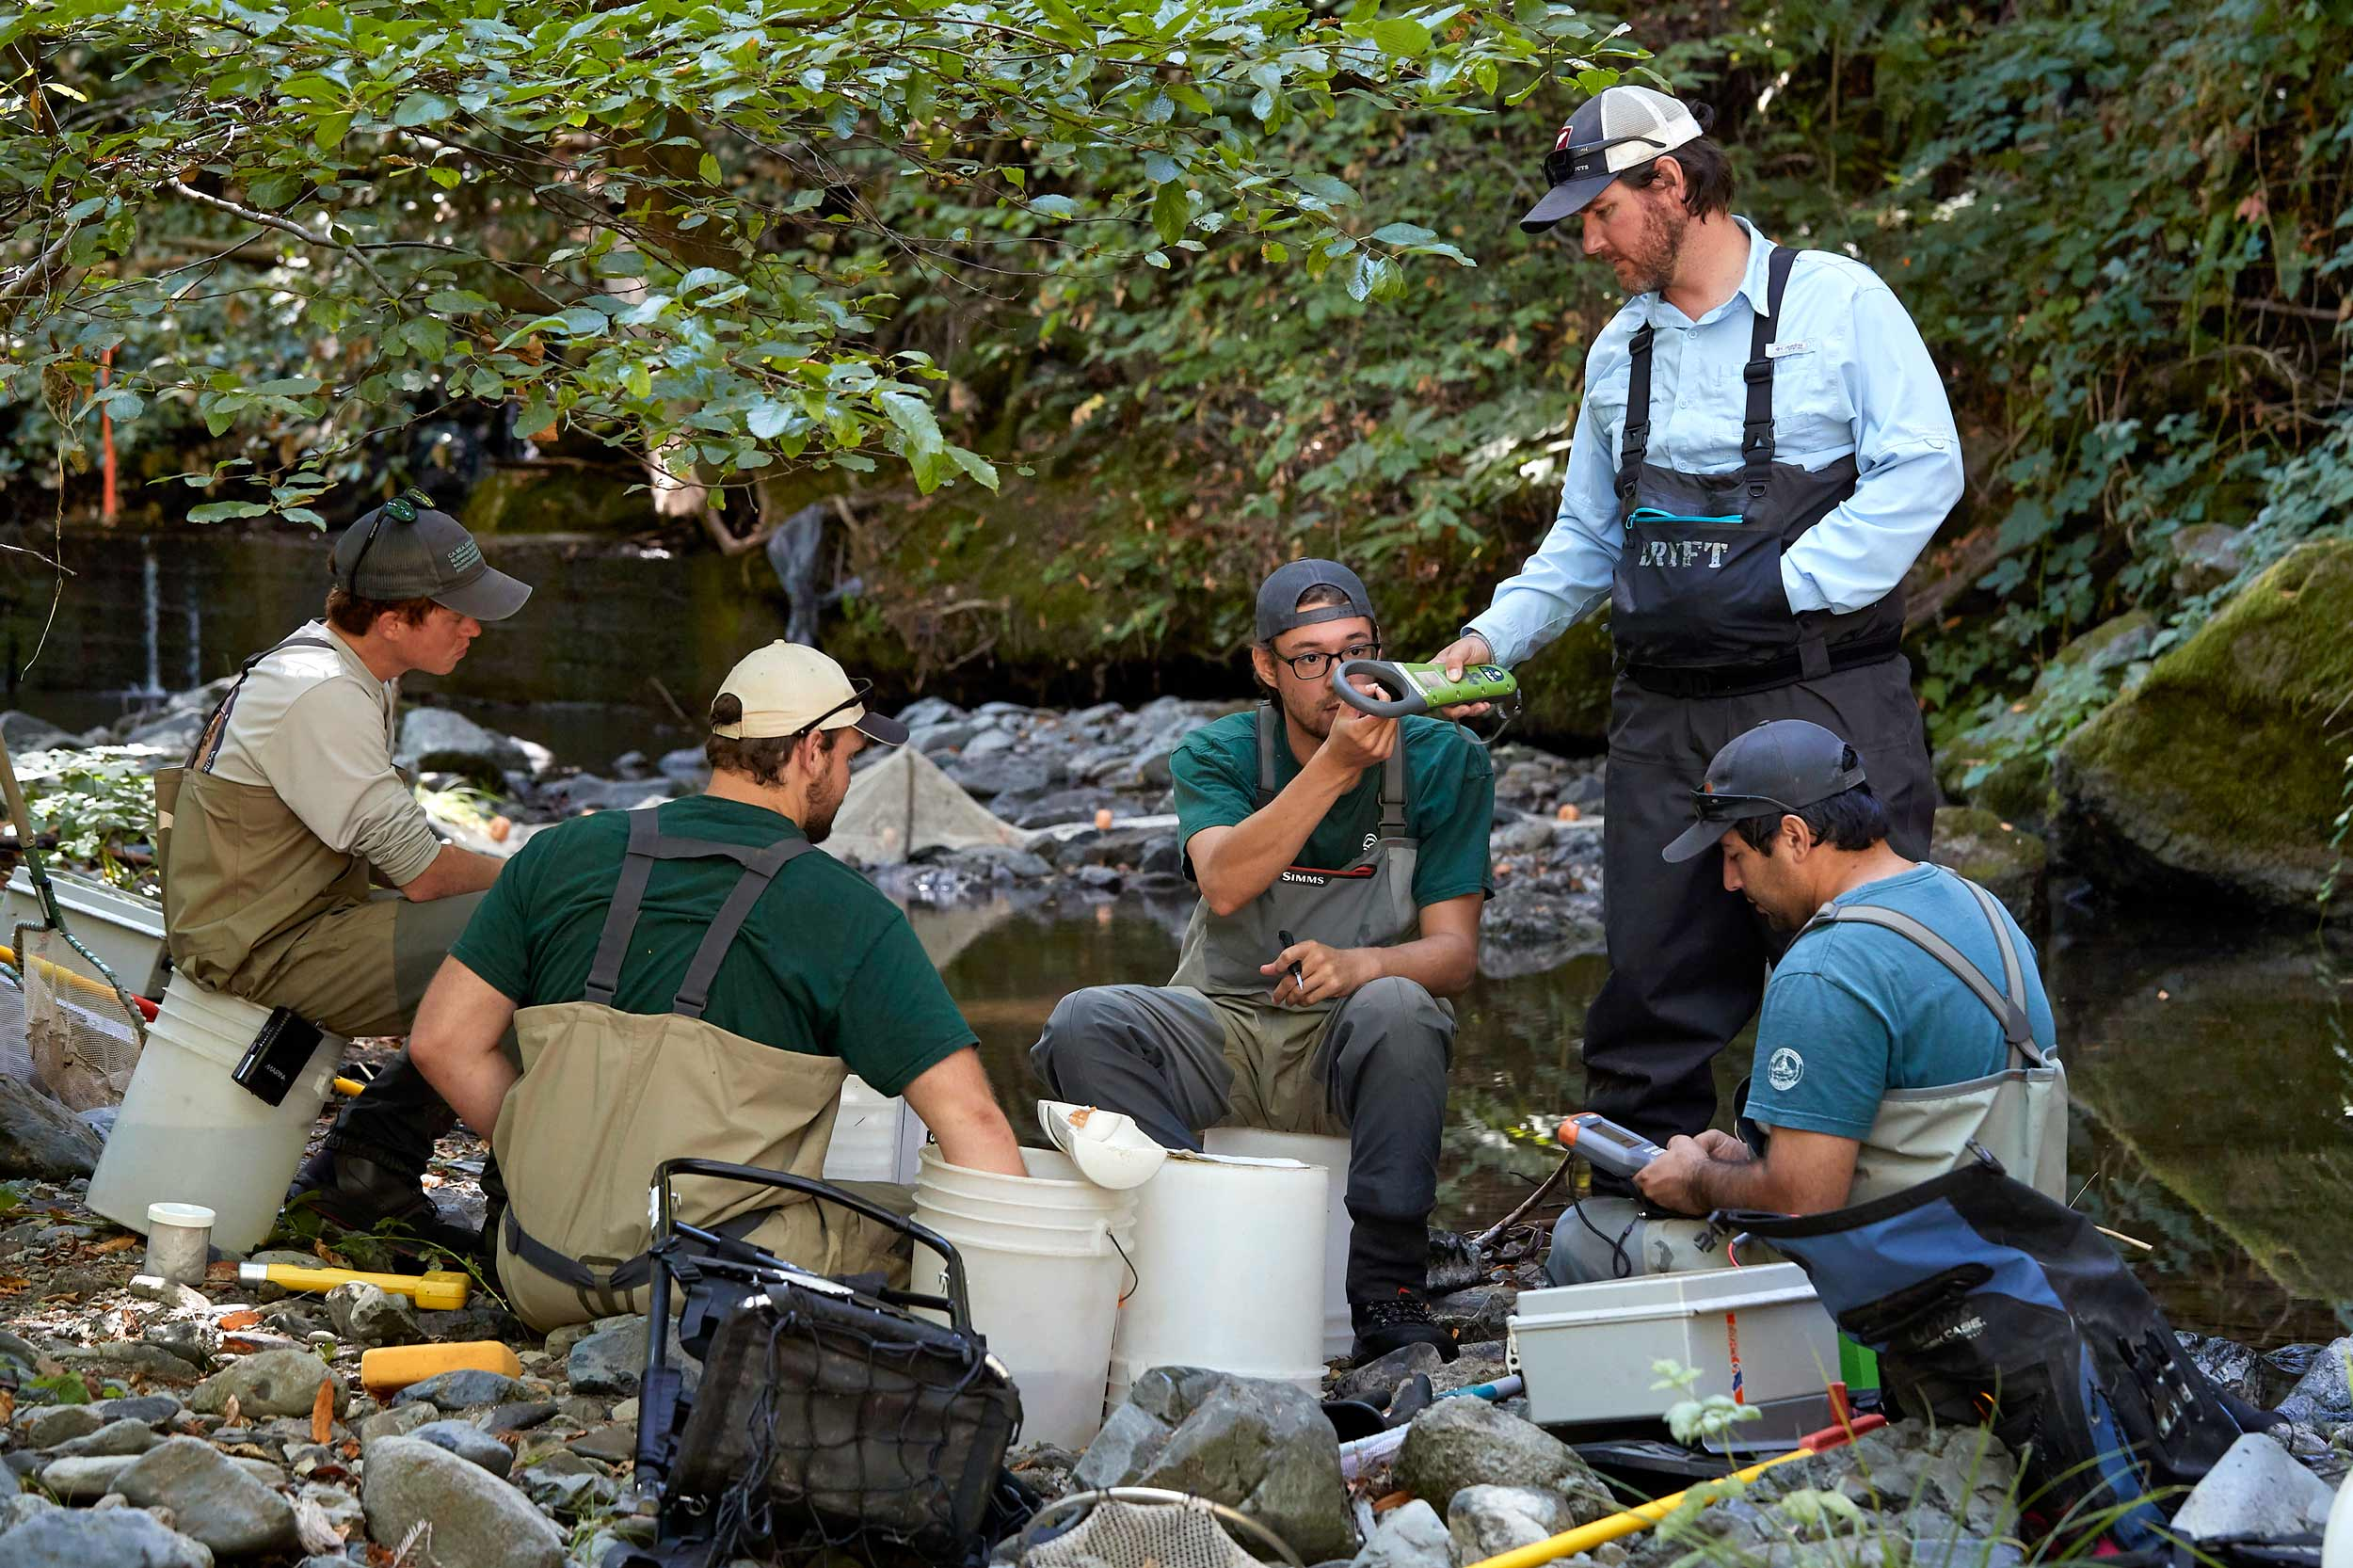 Russian River Salmon and Steelhead Monitoring Program team